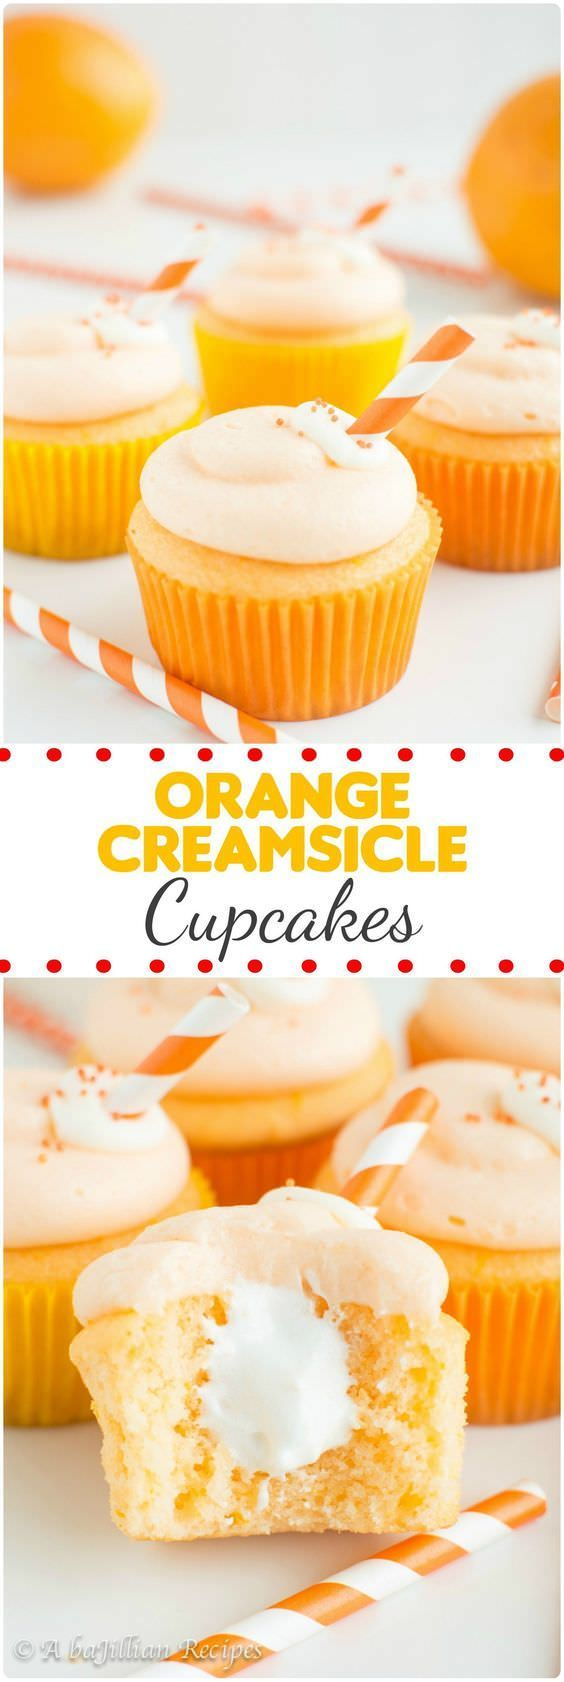 These light and fluffy Orange Creamsicle Cupcakes are filled with a marshmallowy creme filling and topped with a sweet orange vanilla cream cheese frosting! It's like eating an Orange Creamsicle in cupcake form! Orange Creamsicles are one of those childhood treats that you never outgrow. For me though, it was always those little orange sherbet …